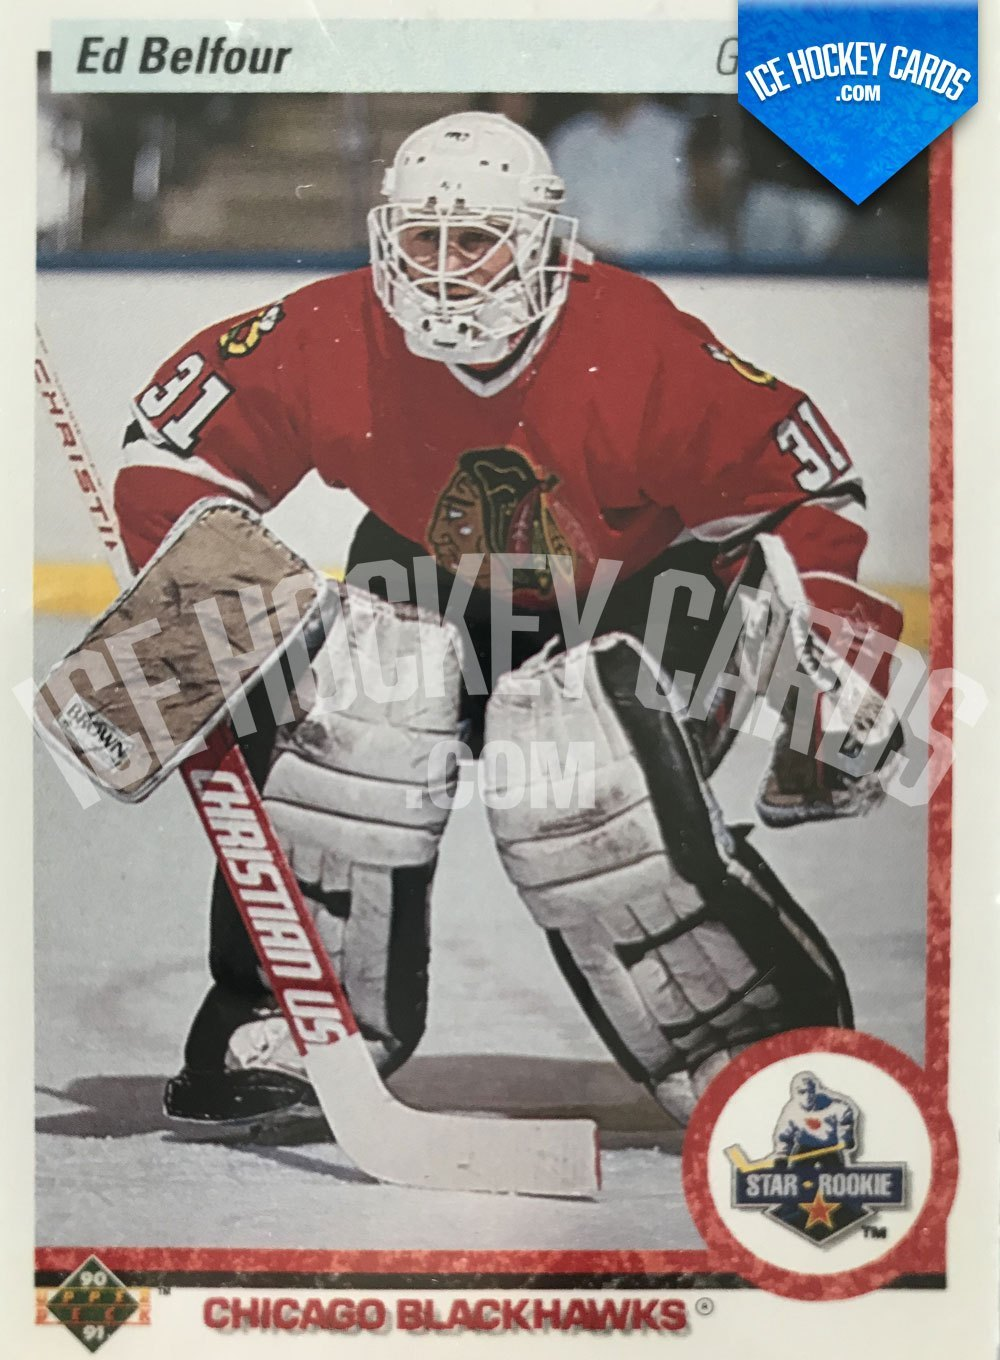 Upper Deck - 90-91 - Ed Belfour Star Rookie Card